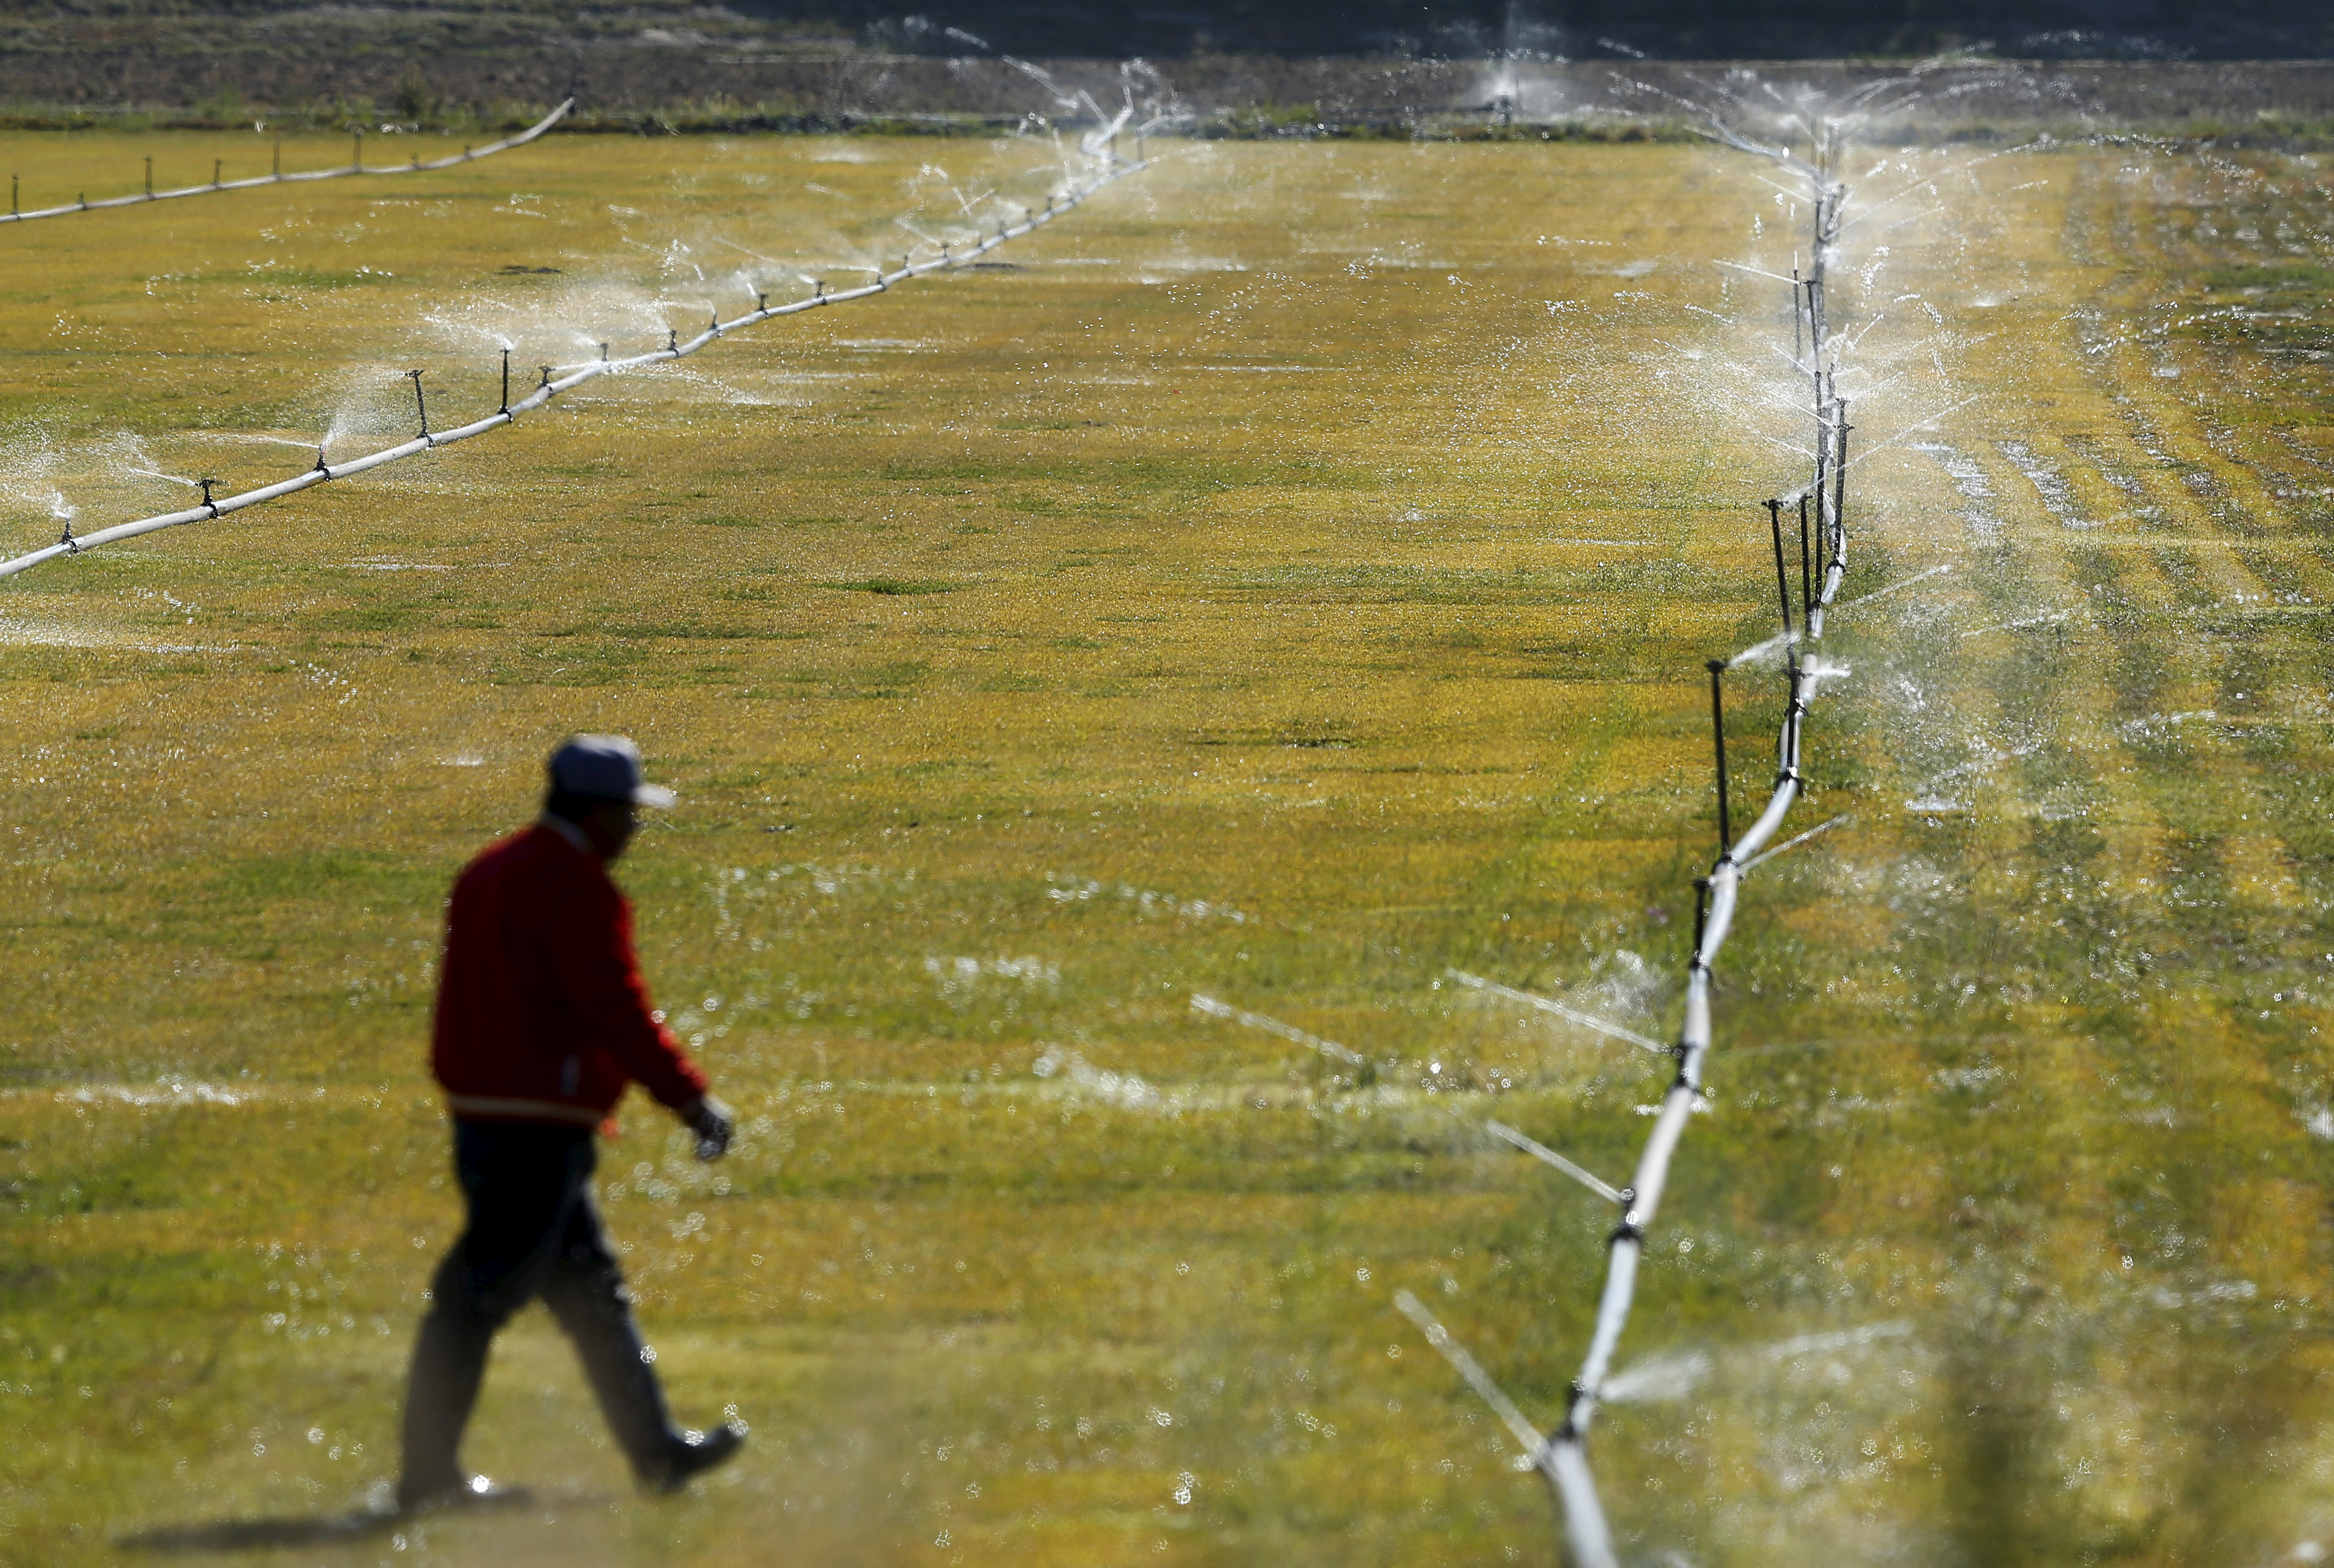 A worker adjusts a water irrigation system in a field near San Ysidro, California March 31, 2016.  REUTERS/Mike Blake